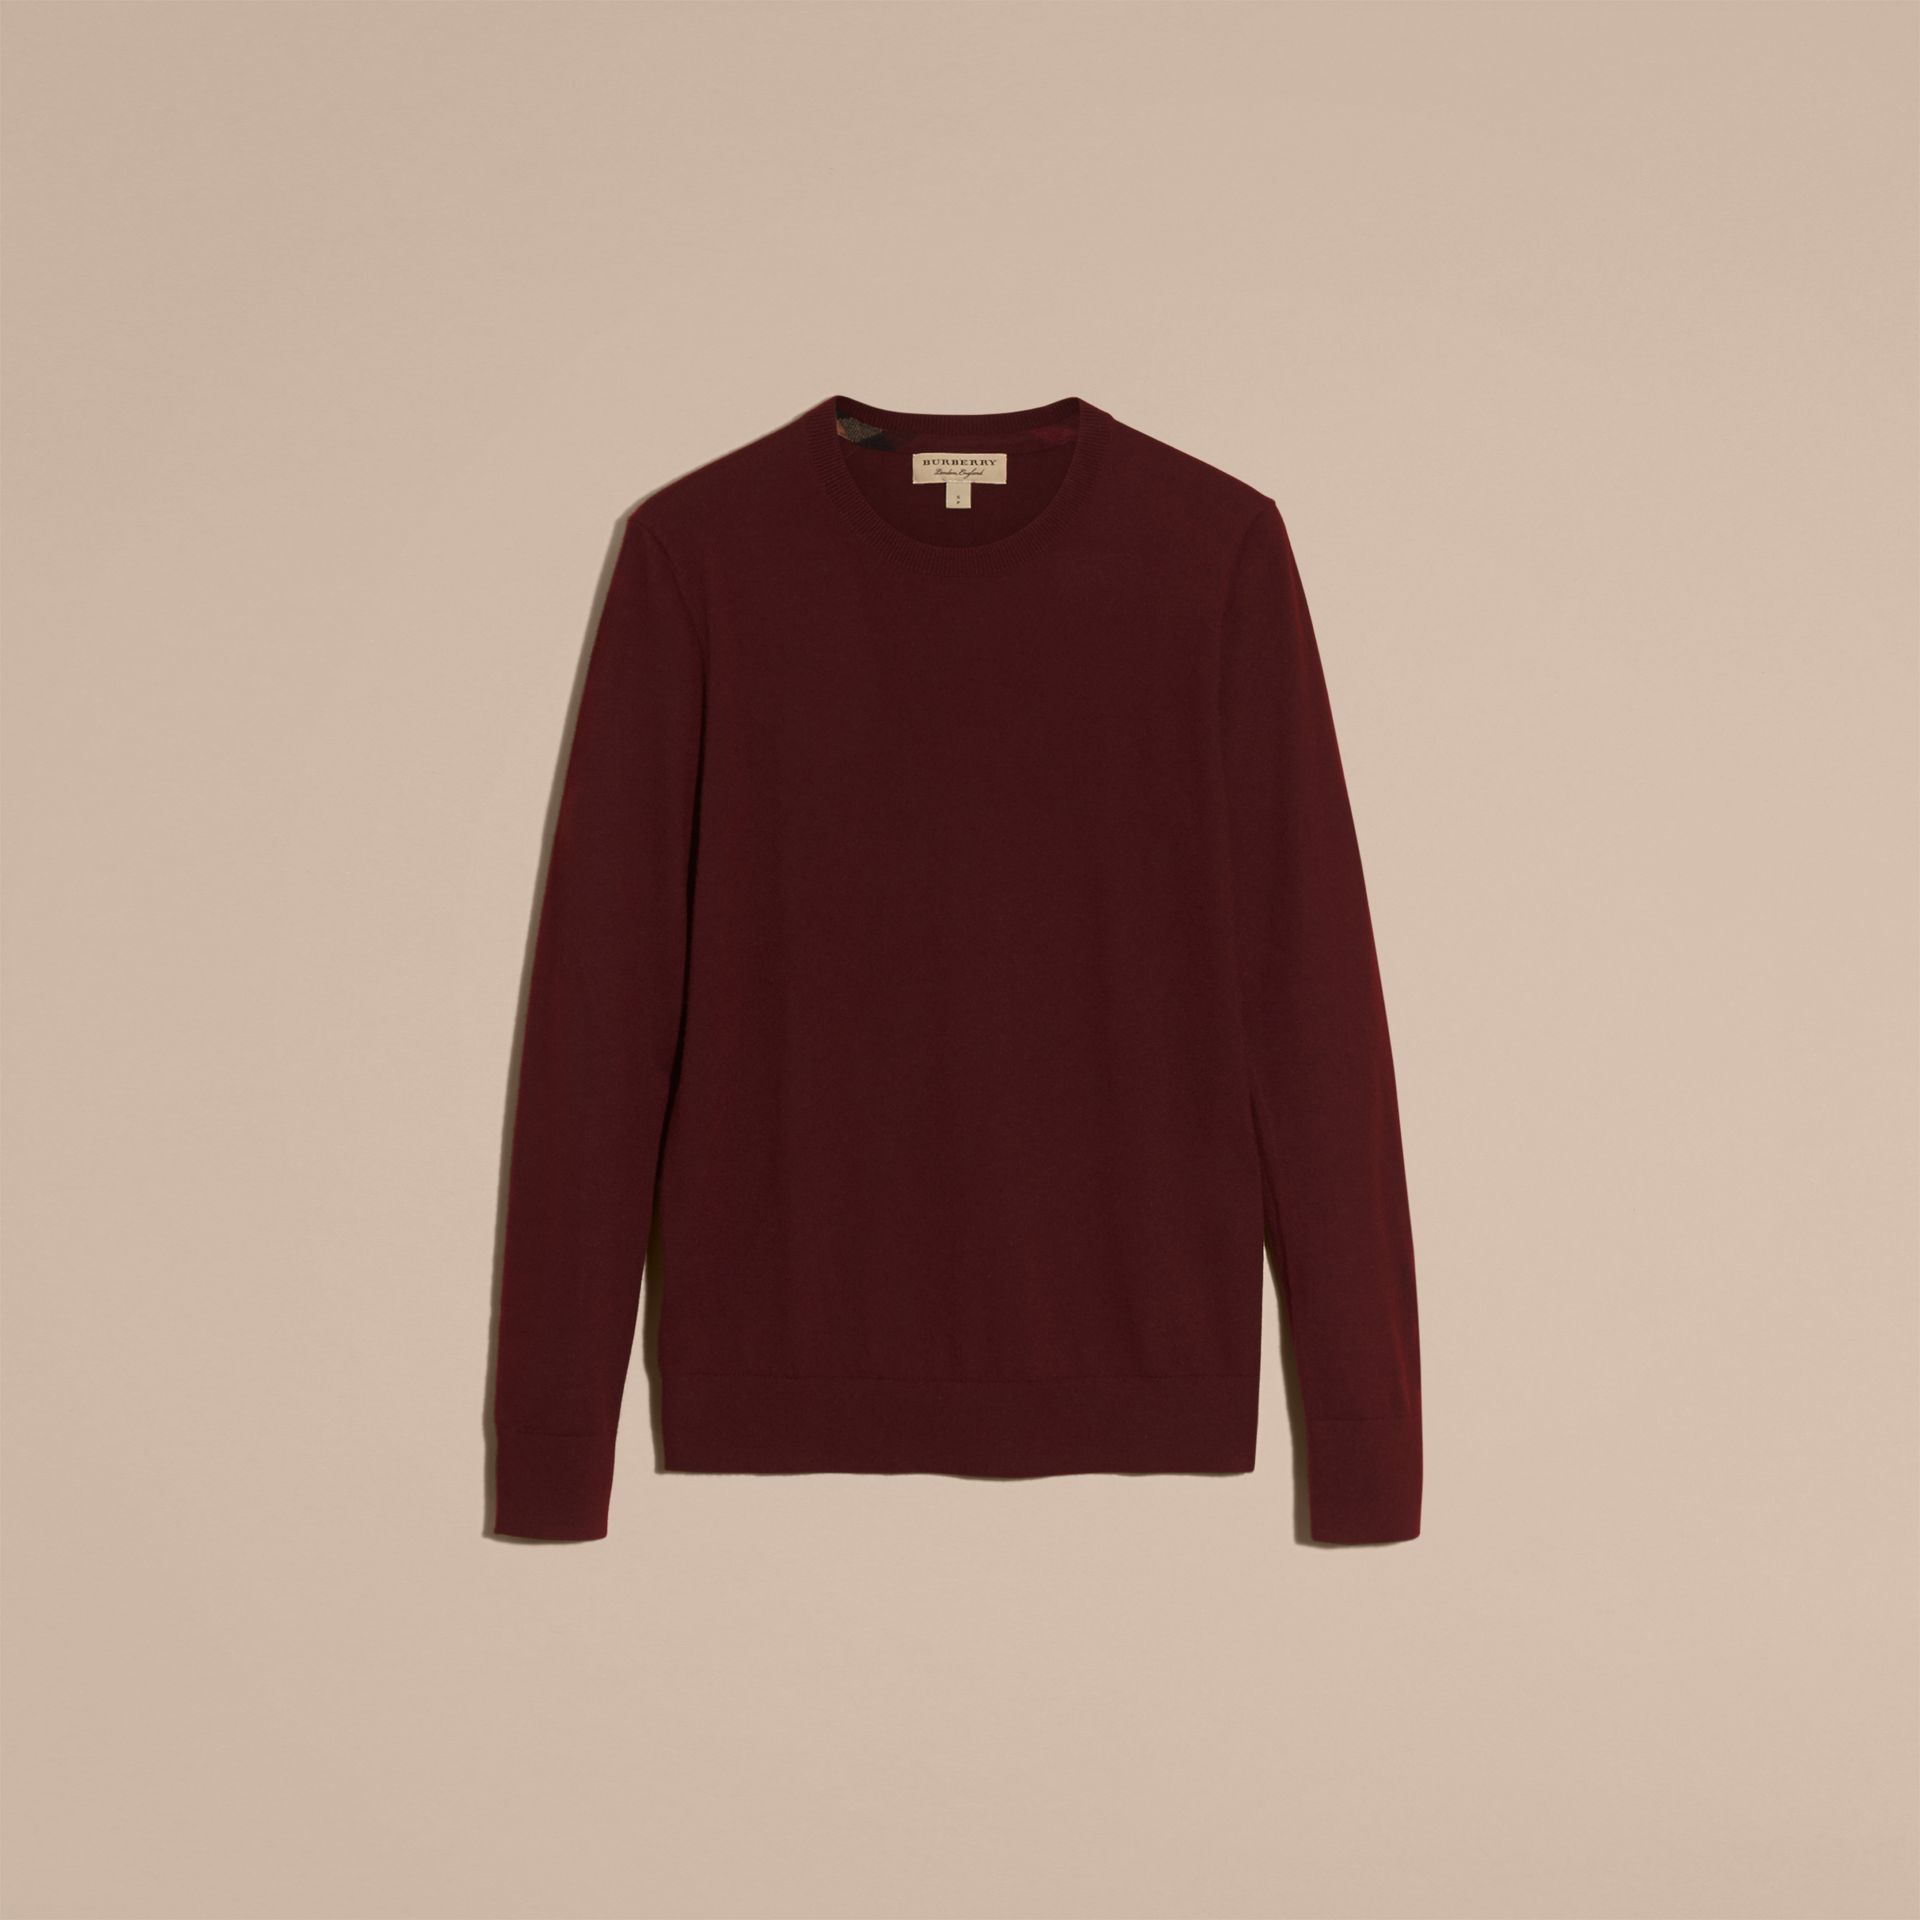 Lightweight Crew Neck Cashmere Sweater with Check Trim in Deep Claret - Men | Burberry Australia - gallery image 4